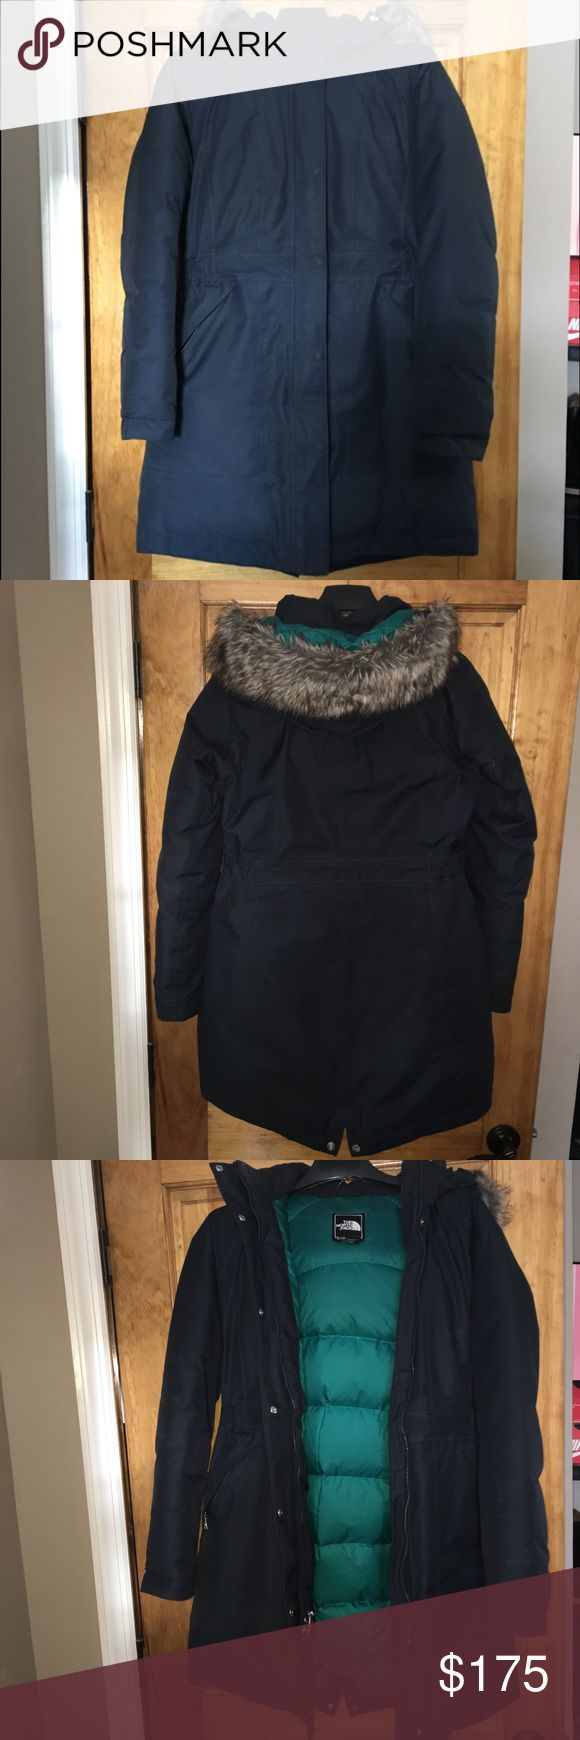 North Face Arctic Parka (M) The North Face women's Arctic Parka in the color Navy with a pretty teal green interior. Size medium. In great condition, was worn gently for only 2 seasons. Hood and faux fur is removable. Such a warm and cozy parka, you will never be cold with this jacket. The North Face Jackets & Coats Puffers